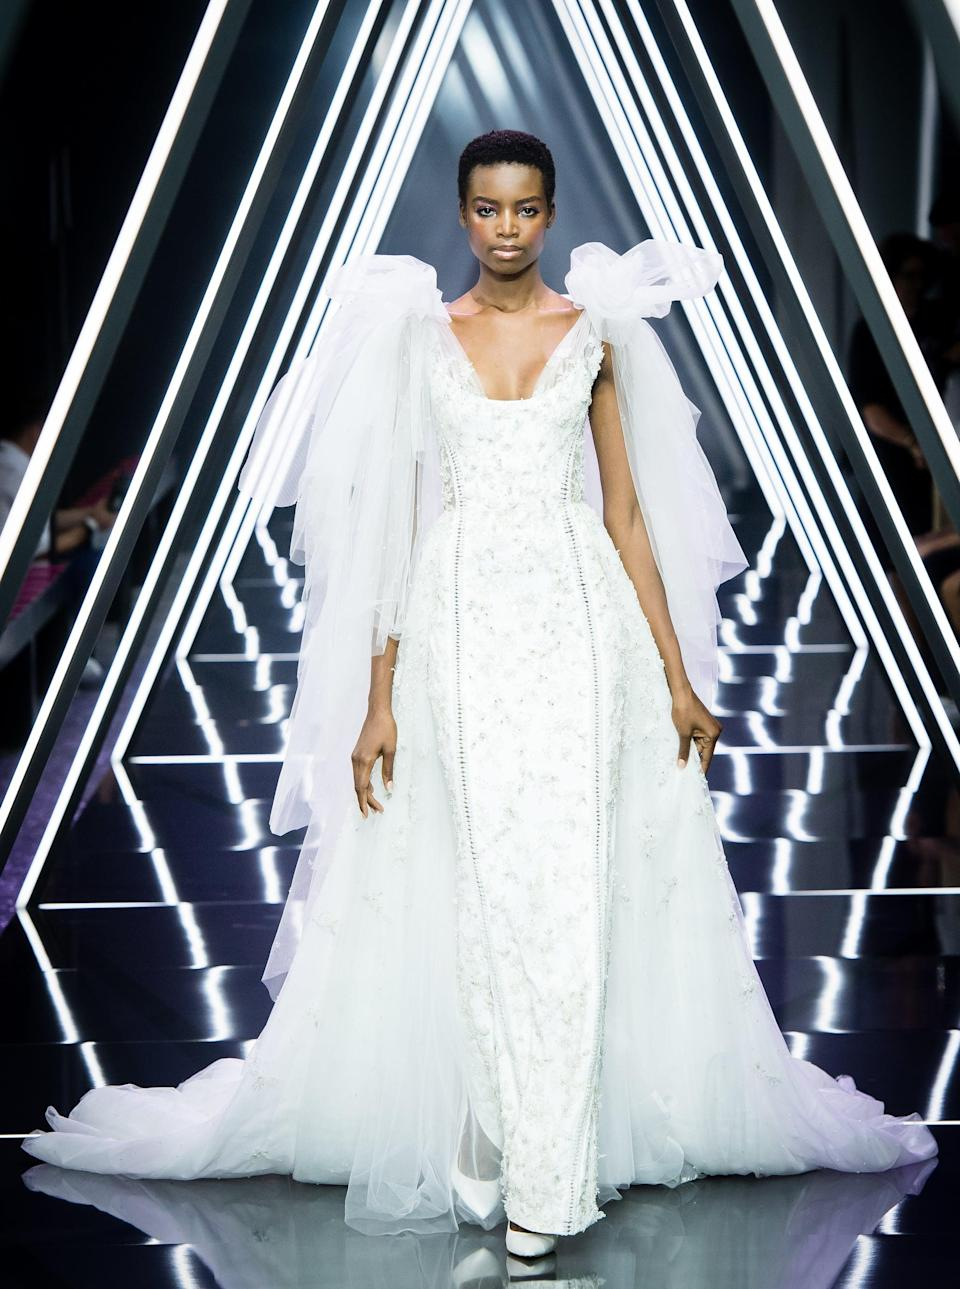 <p>It was obvious that Angolan model Maria Borges was going to be a star when she booked 17 shows in her first Fashion Week season. In 2015, Borges became the first Black model to walk in Victoria's Secret's annual show with her natural hair, which sparked a larger conversation in the fashion industry about inclusion on the catwalk.</p>